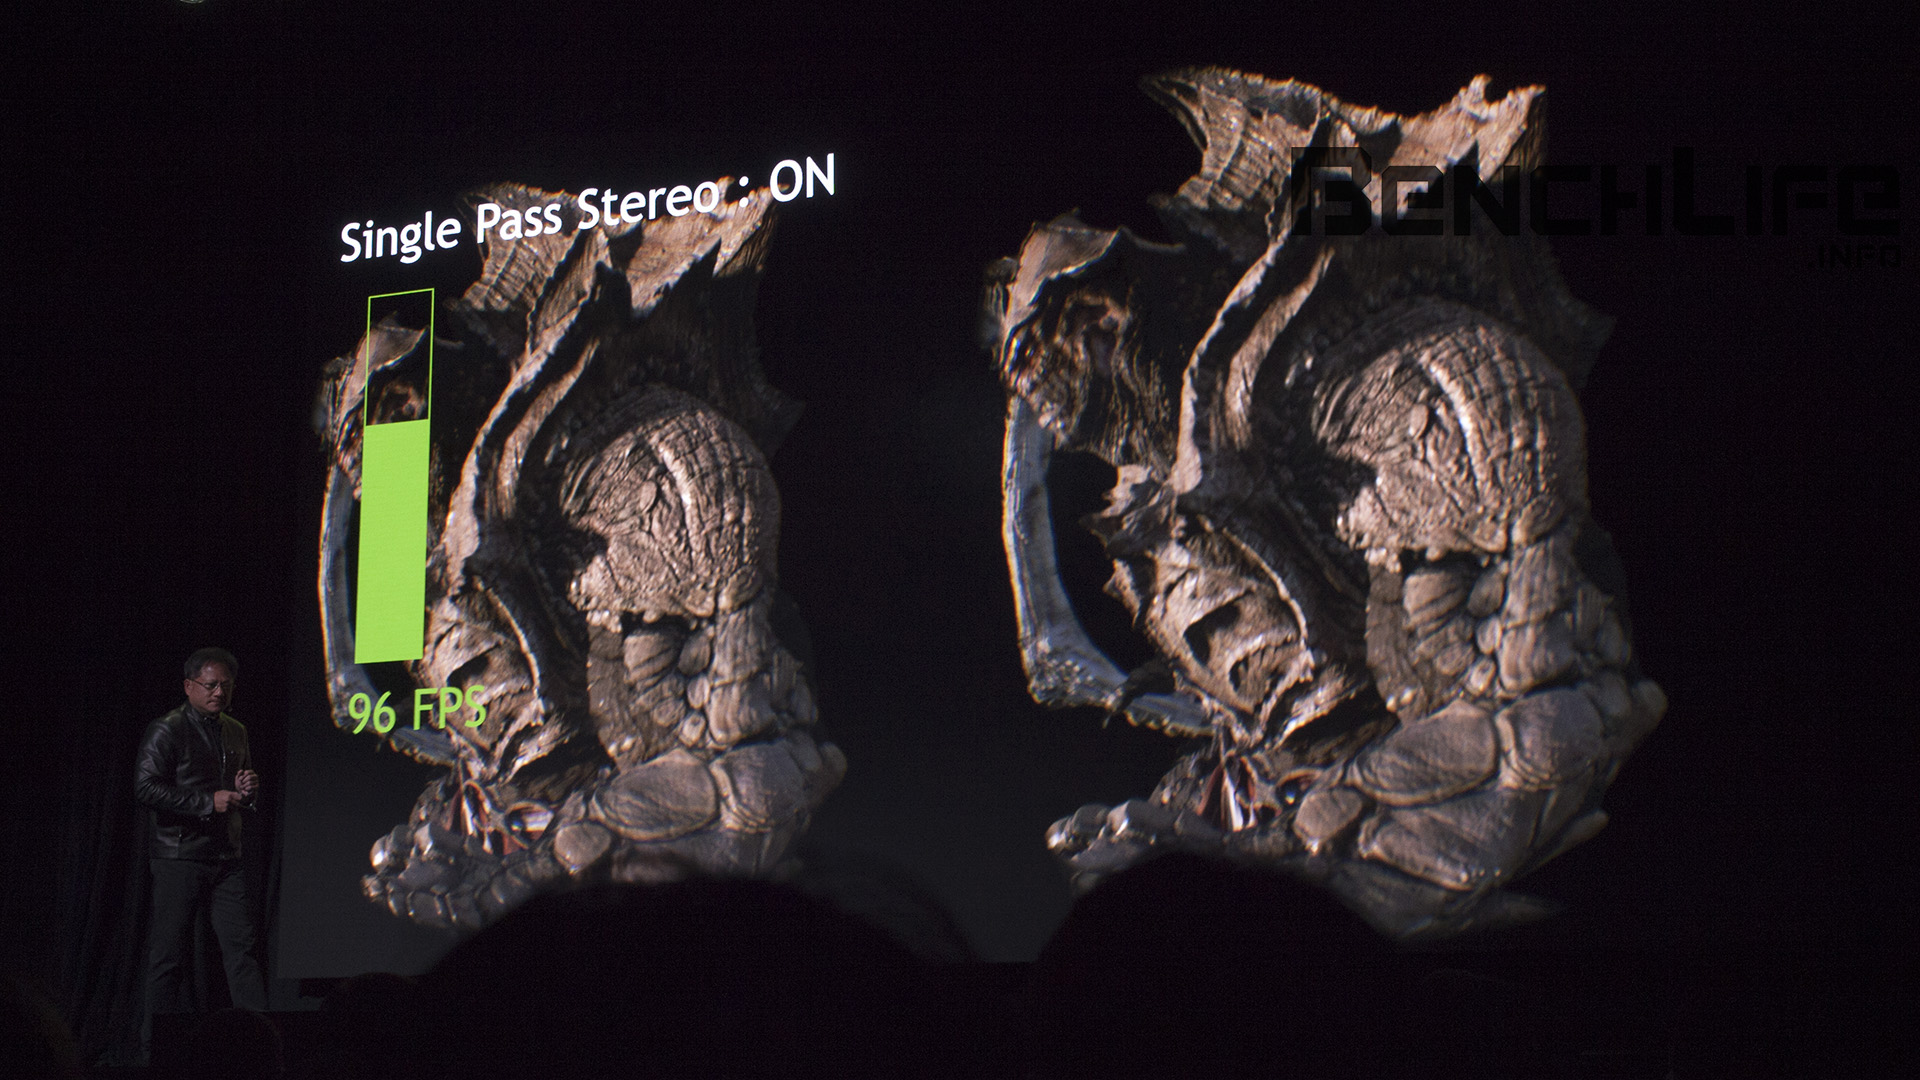 single pass stereo